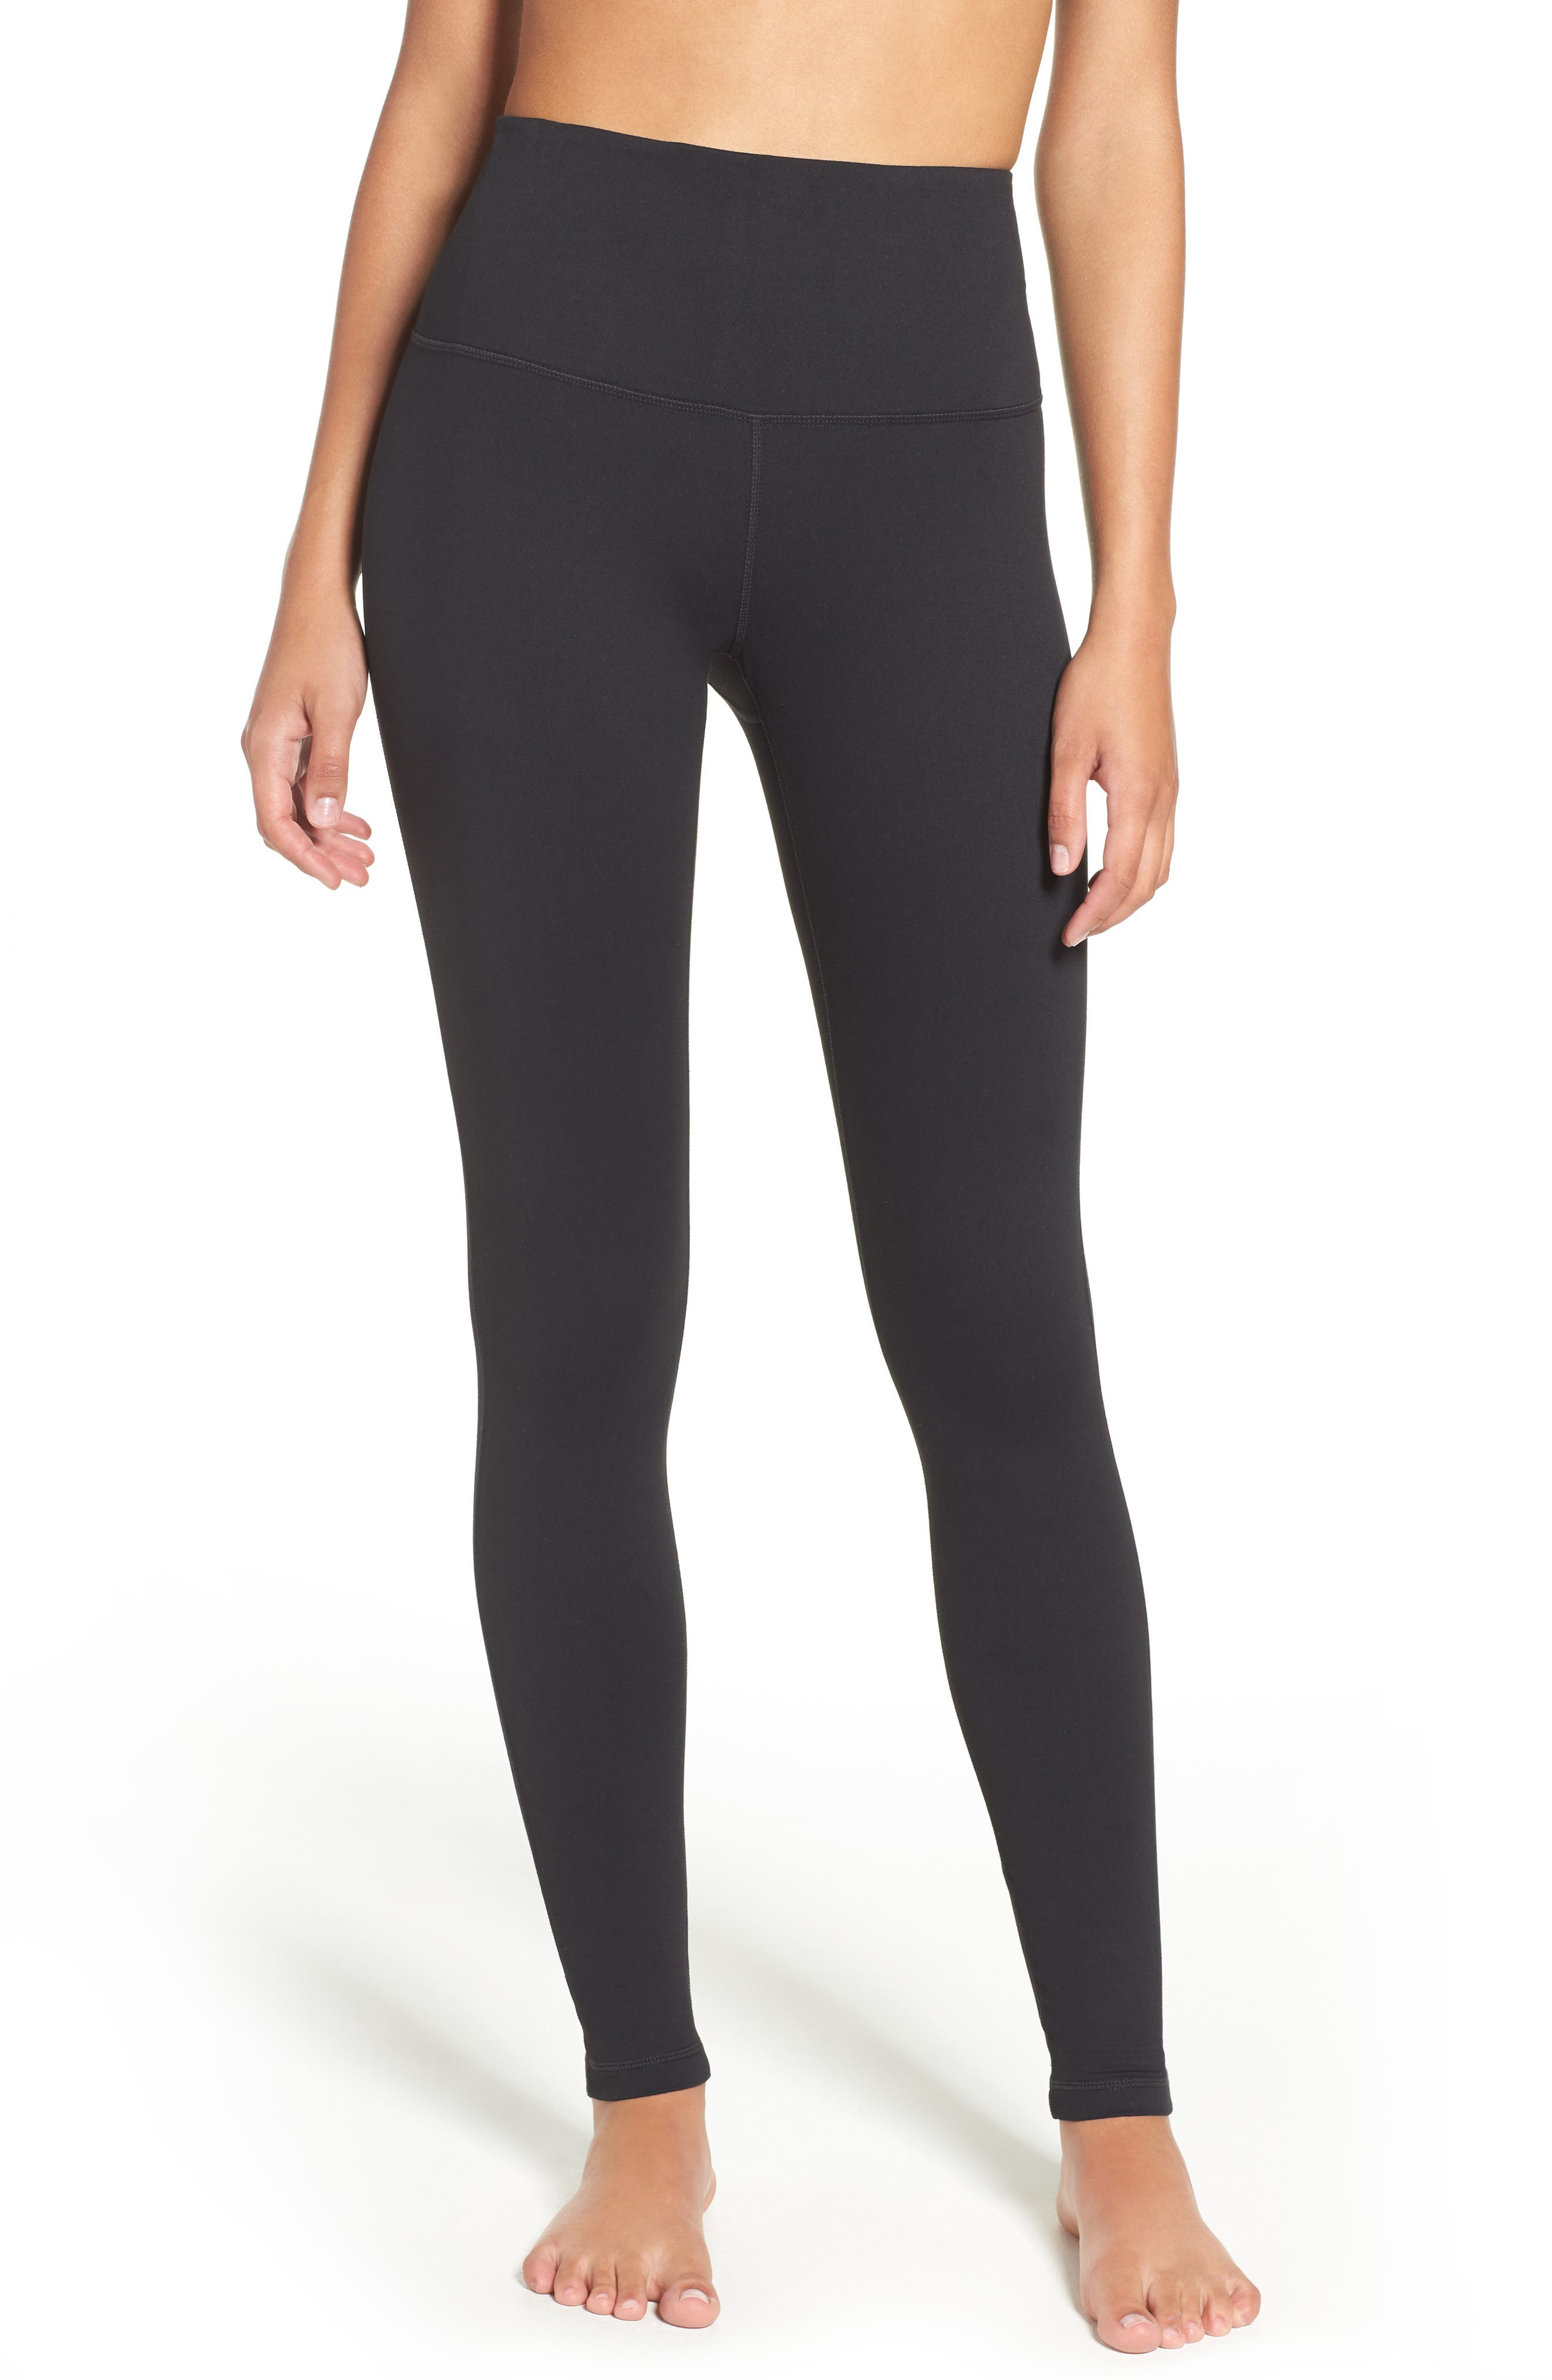 1950 Style Clothing- A Shopping Guide Womens Zella Live In High Waist Leggings $59.00 AT vintagedancer.com